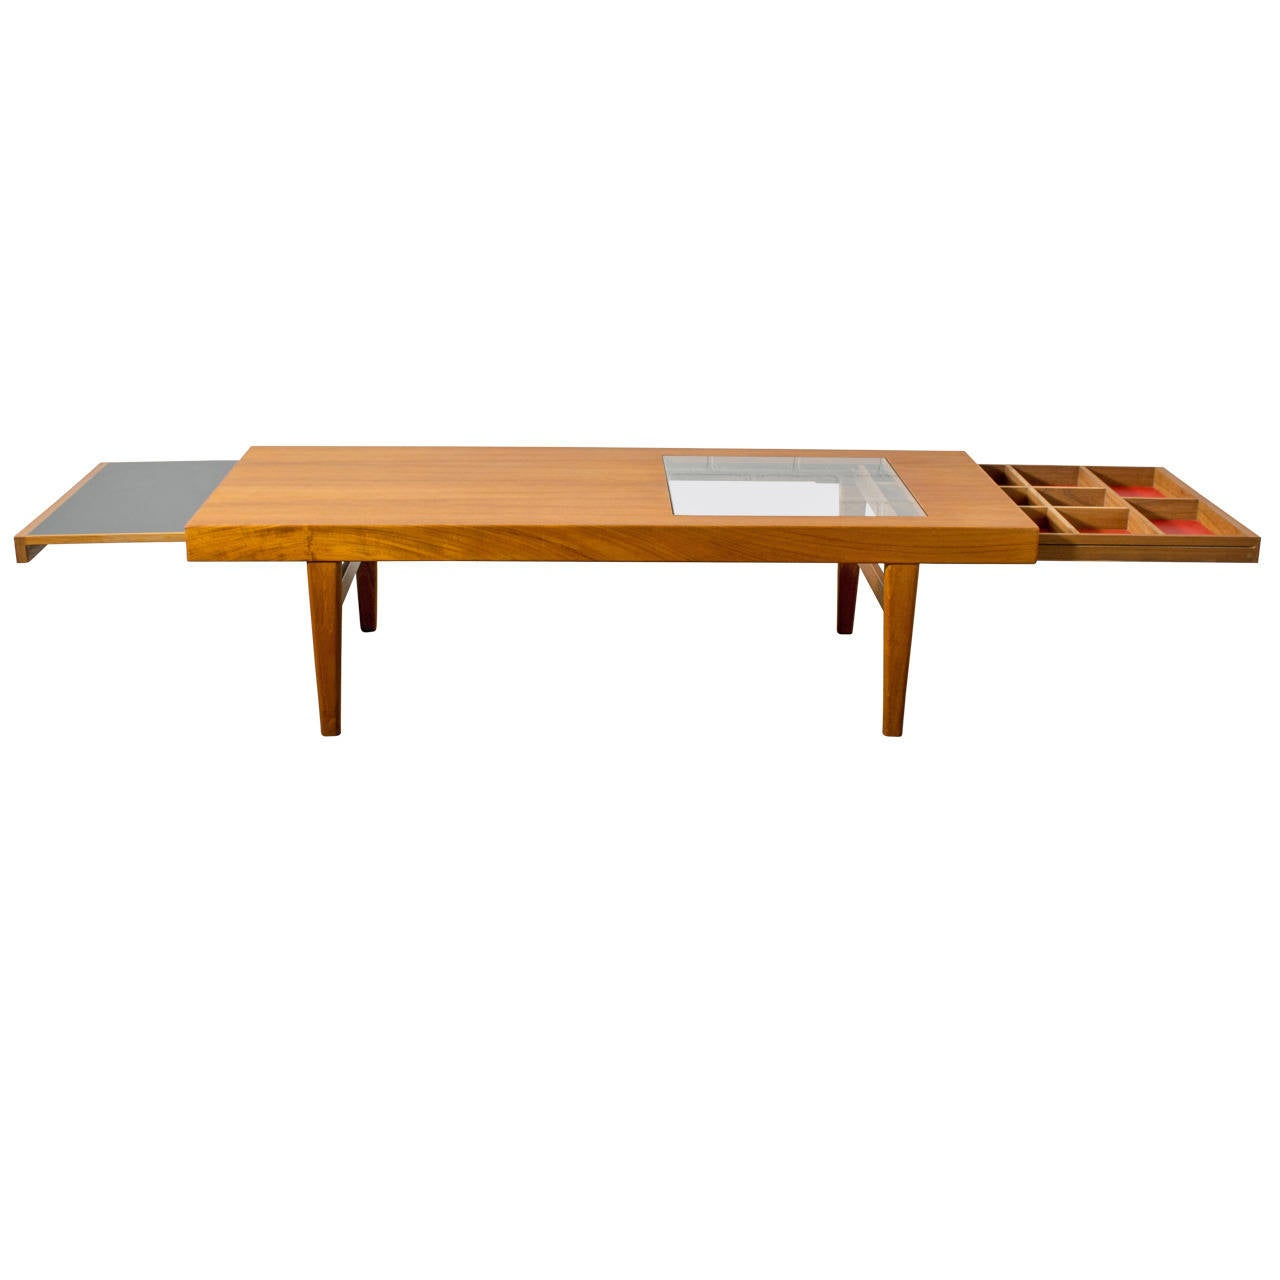 Rare danish modern coffee table by selig at 1stdibs for Modern coffee table for sale